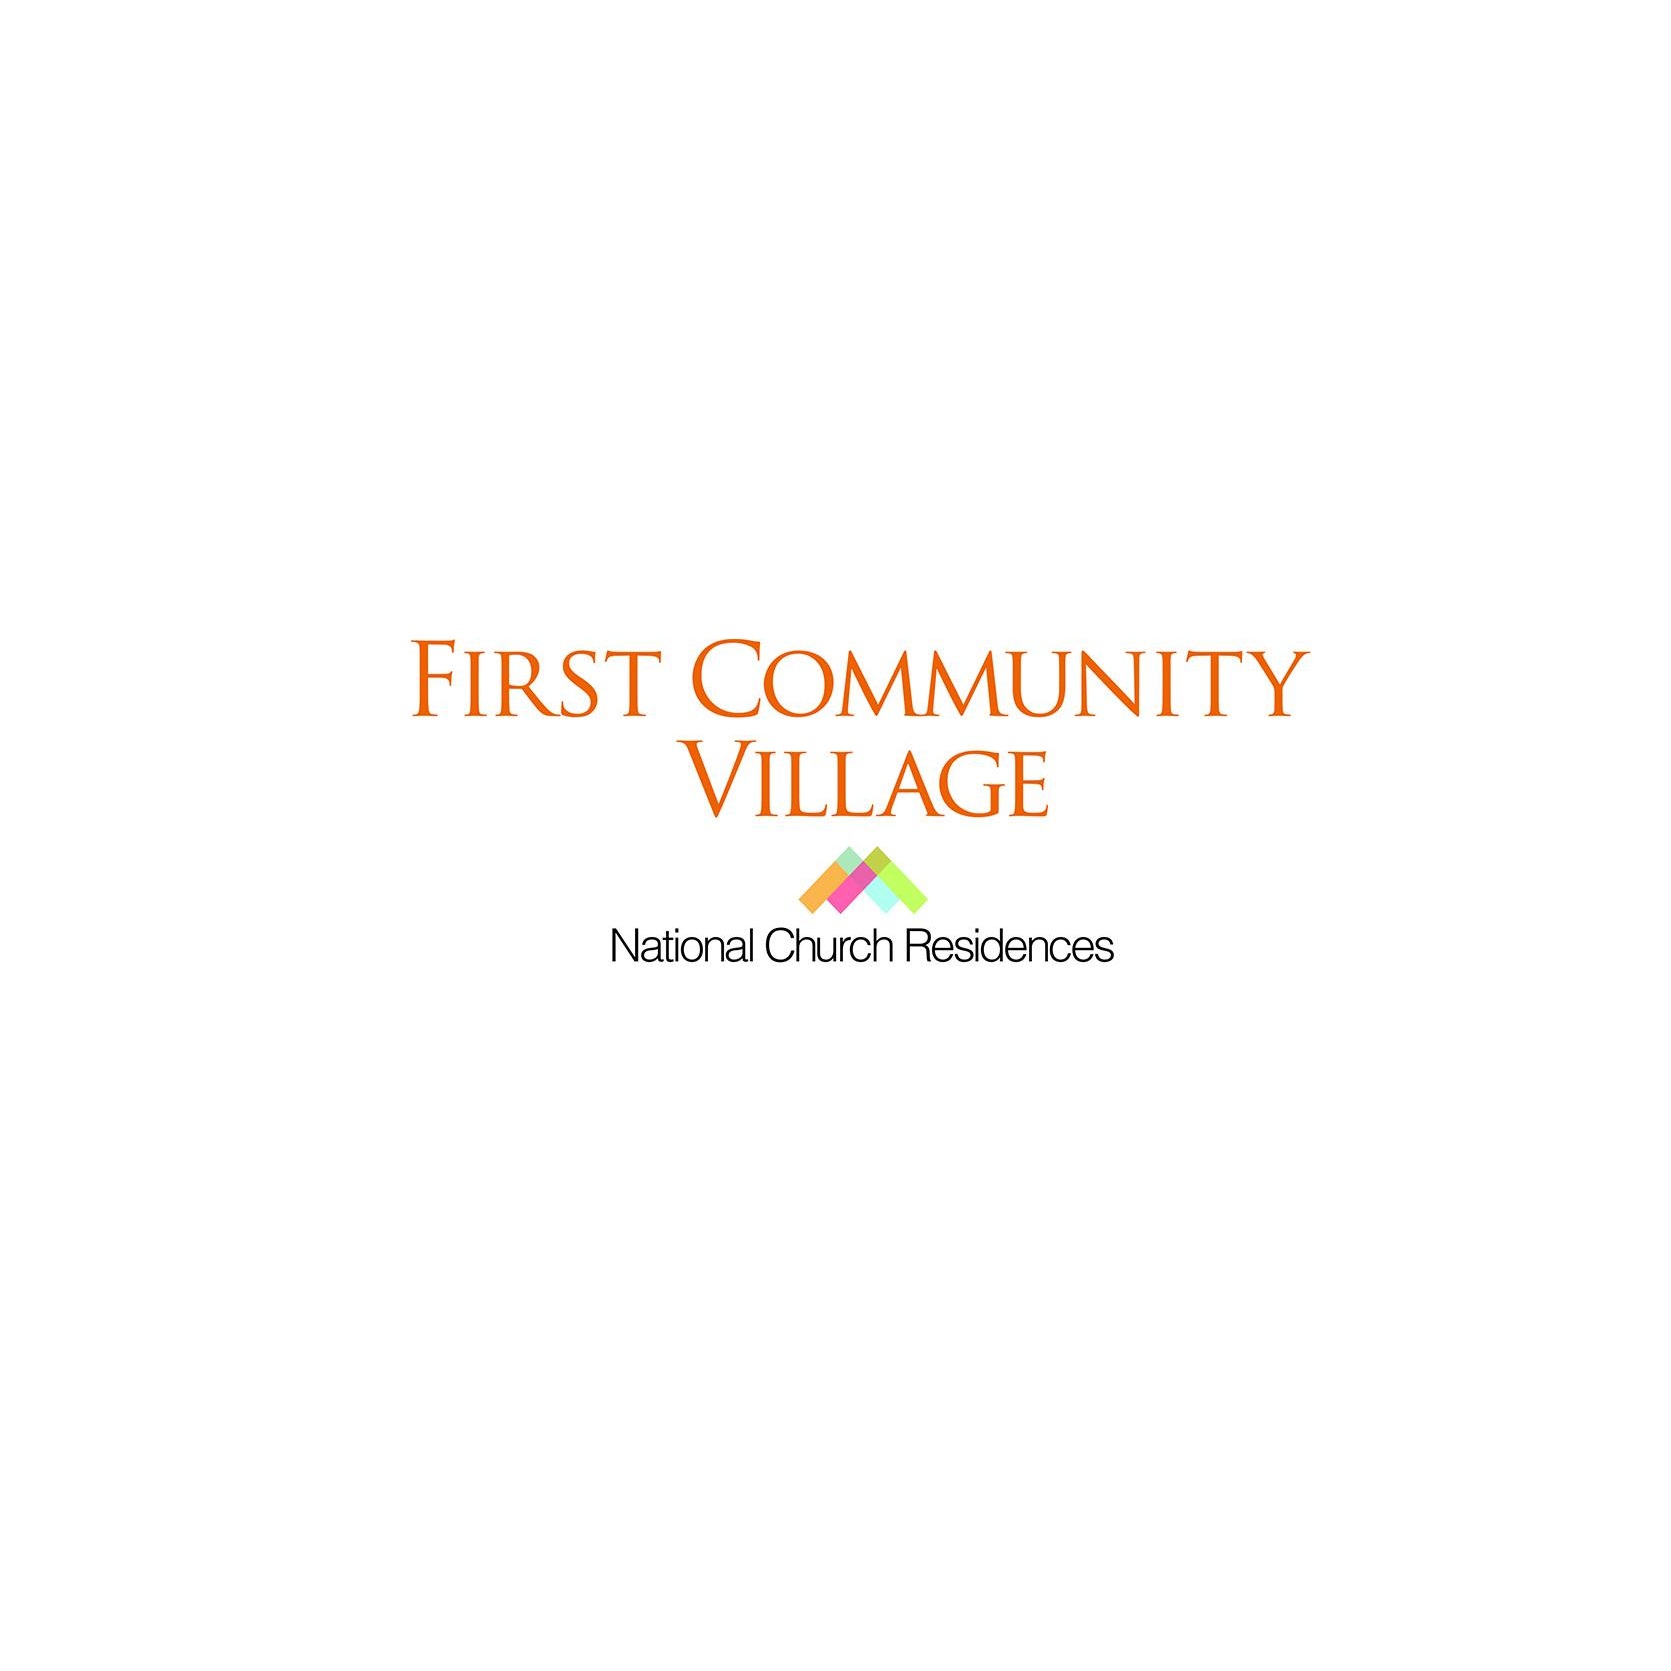 First Community Village